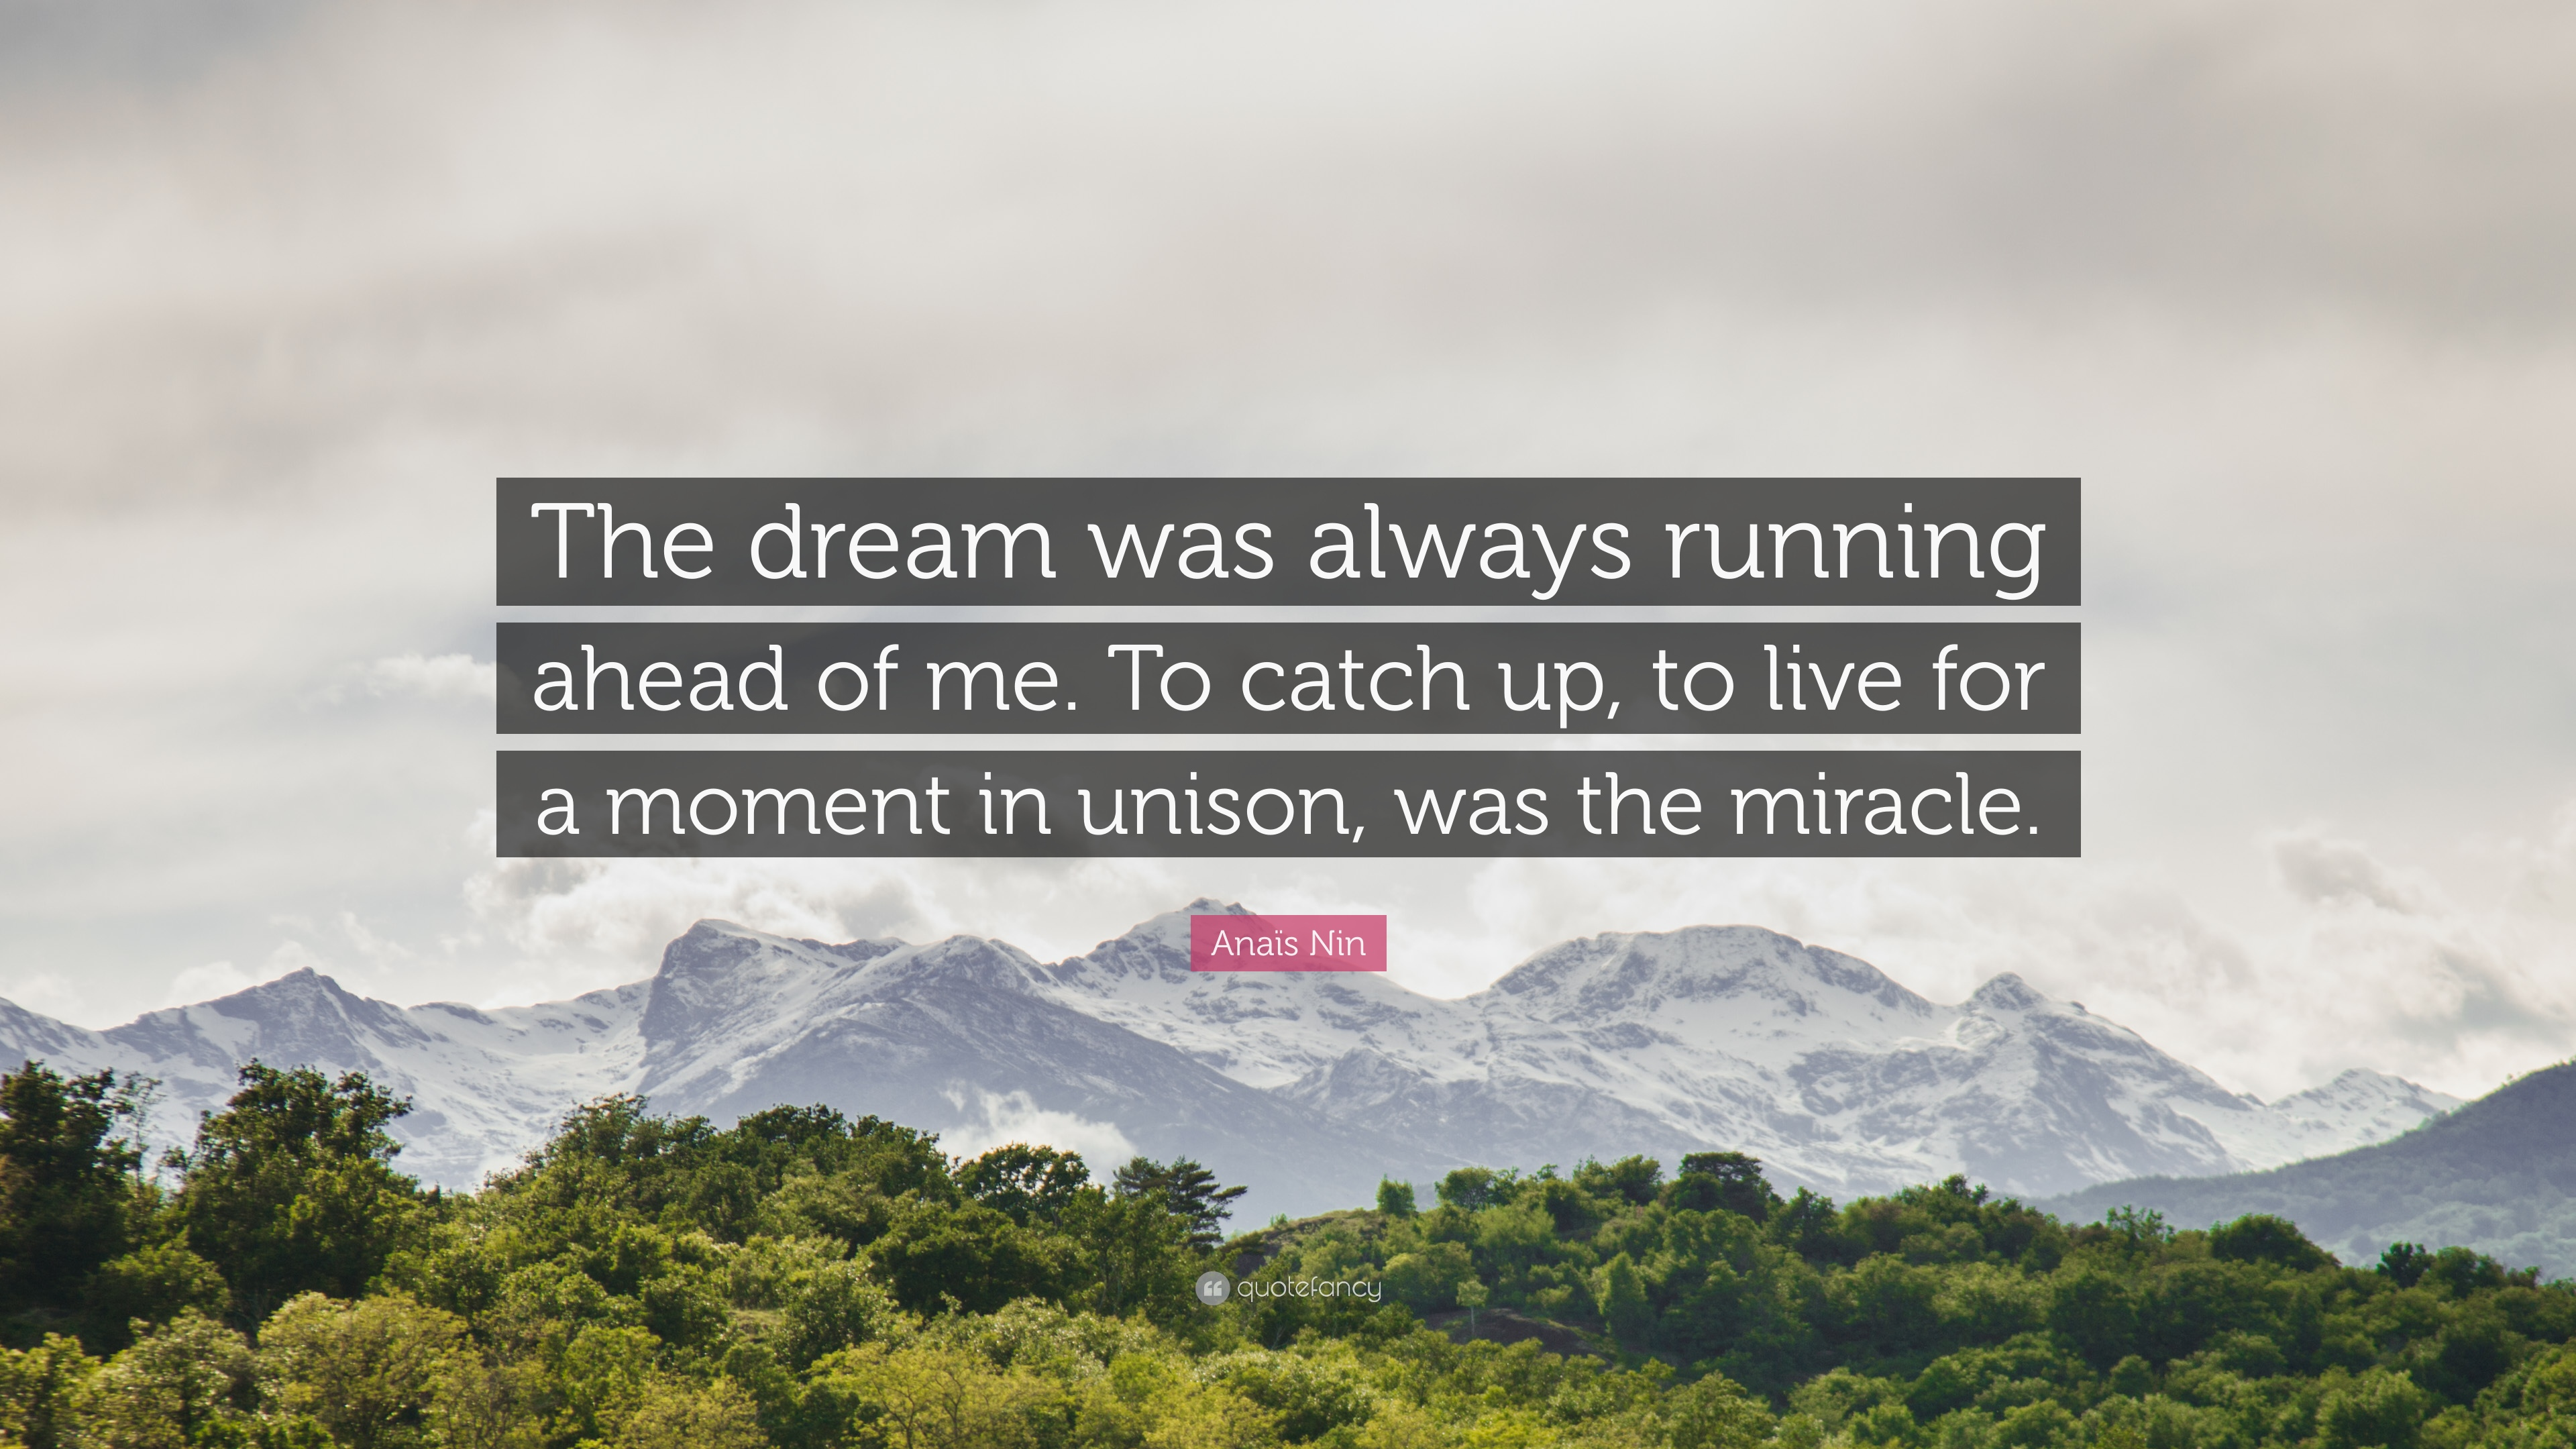 Attrayant Anaïs Nin Quote: U201cThe Dream Was Always Running Ahead Of Me. To Catch